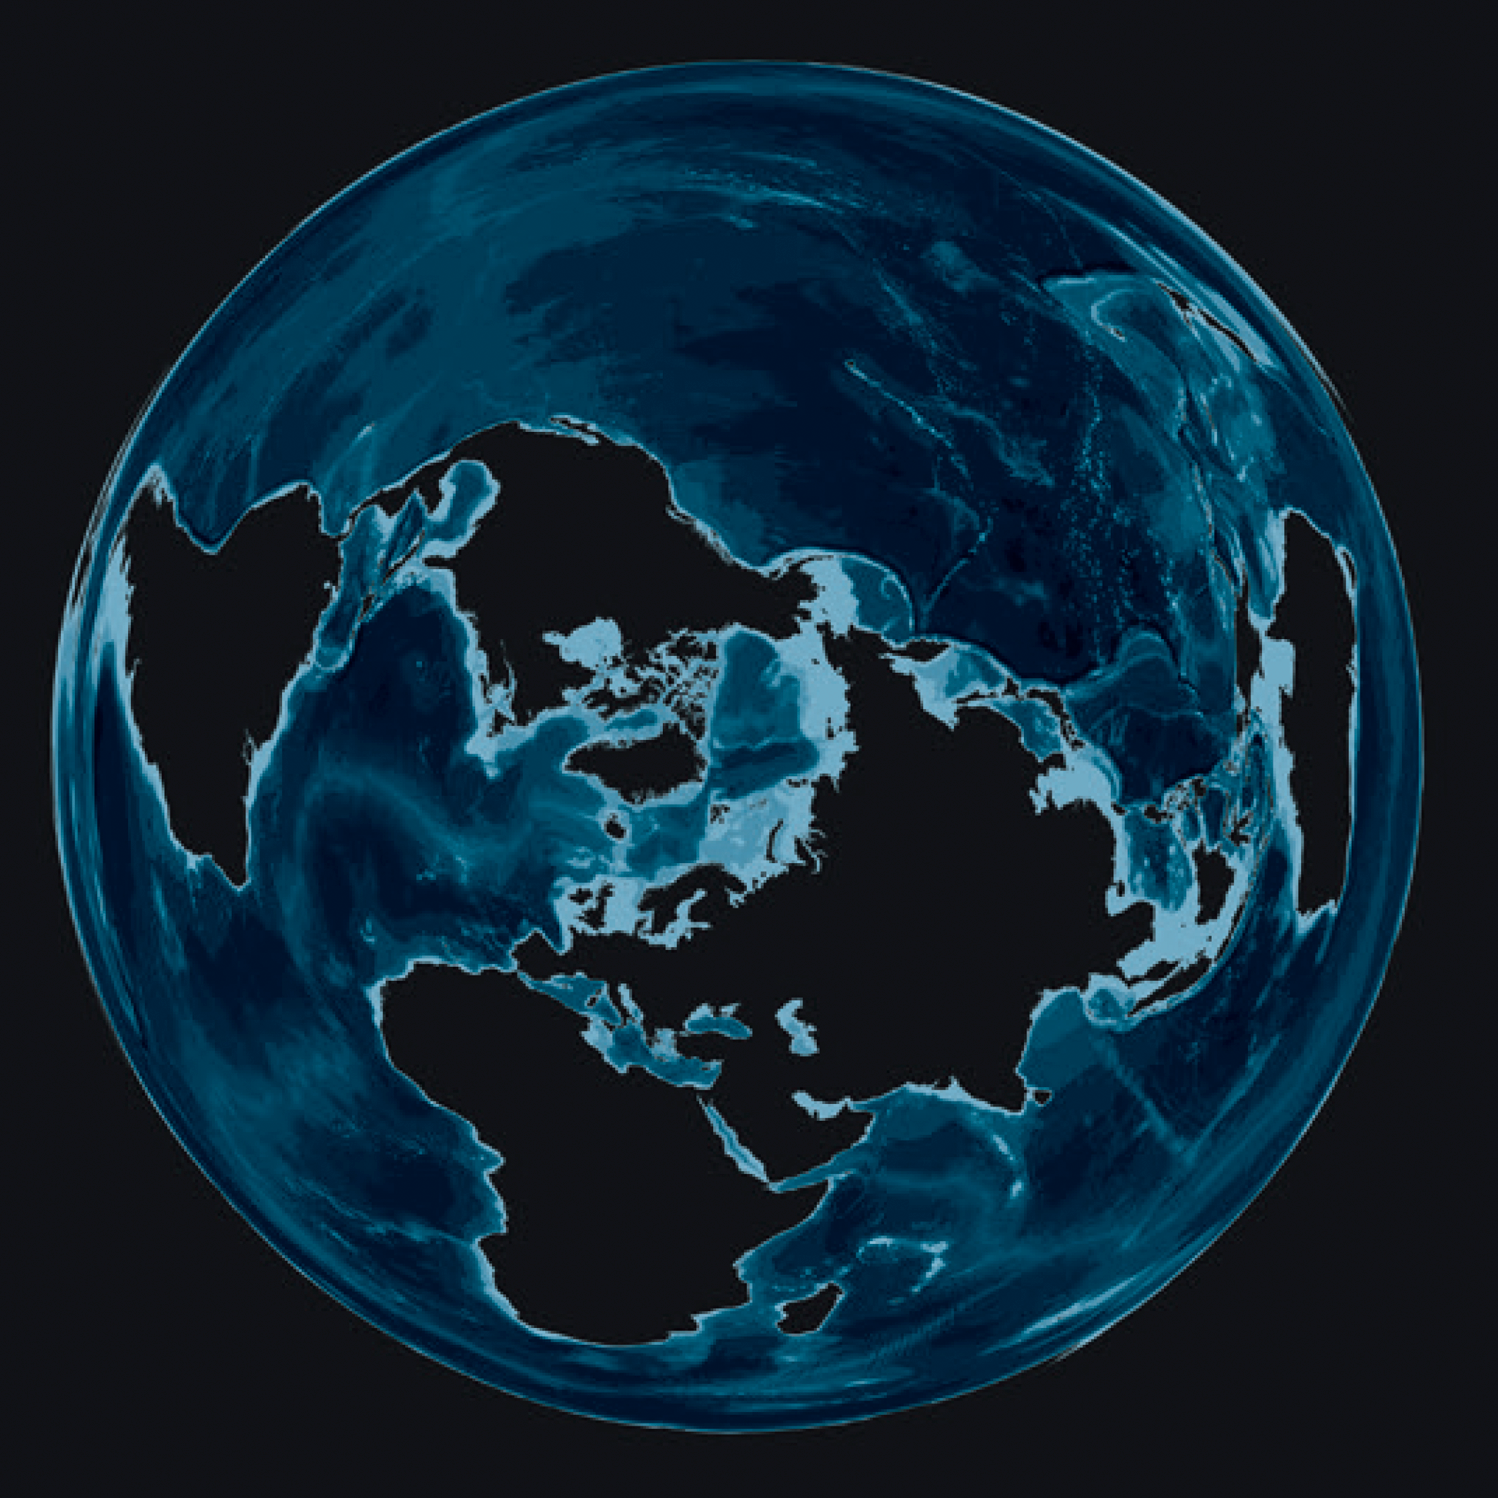 Map_Greenpeace_Svalbard_Globe-View.png